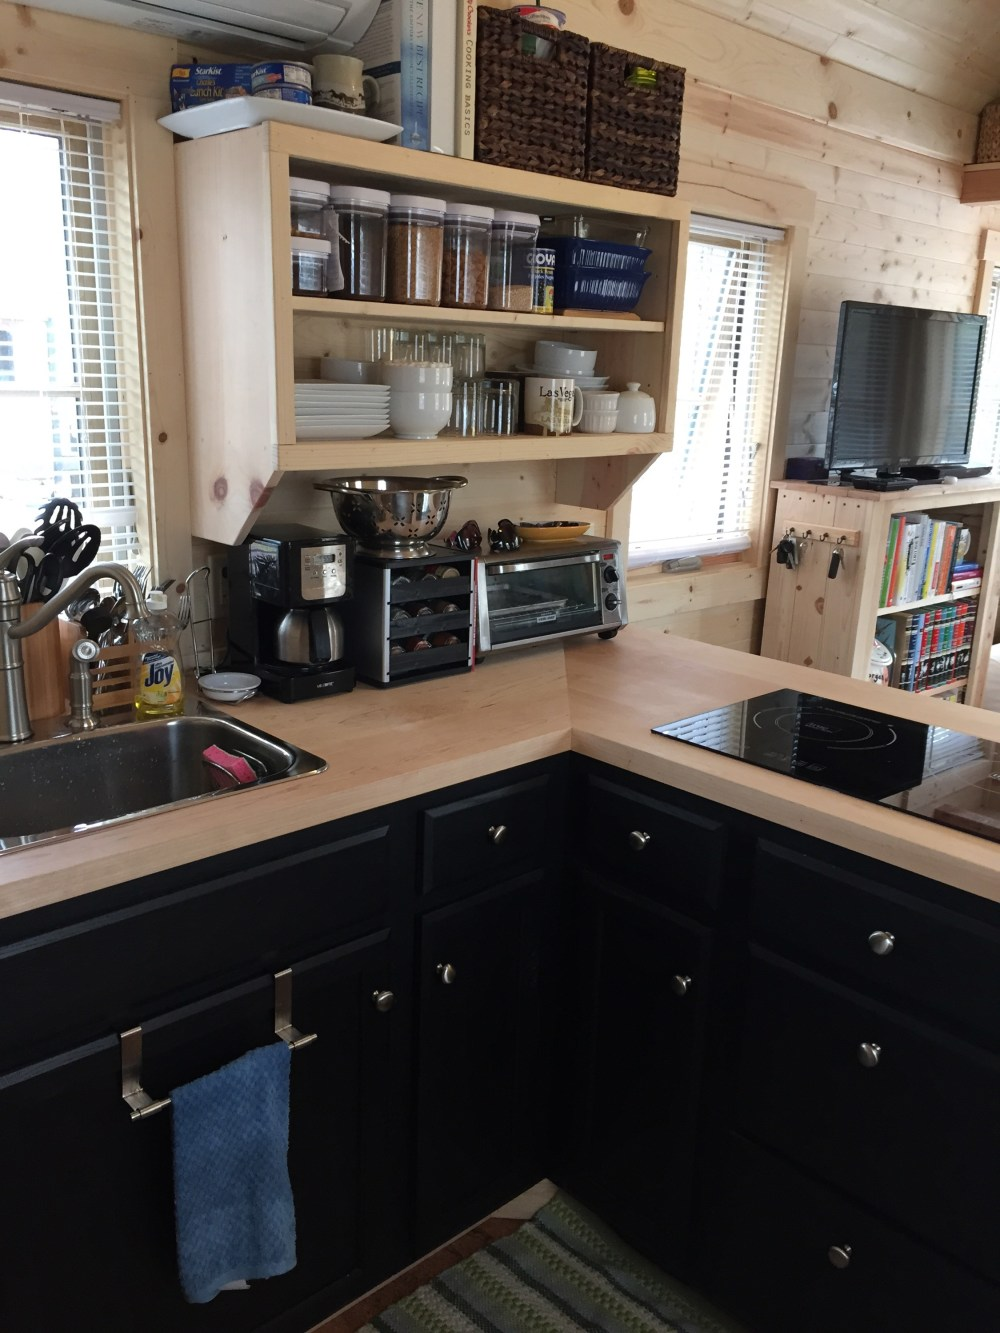 medium resolution of  and a few of my most useful kitchen gadgets i also wanted it to feel roomy no galley kitchens for this kid here is the kitchen i ended up with